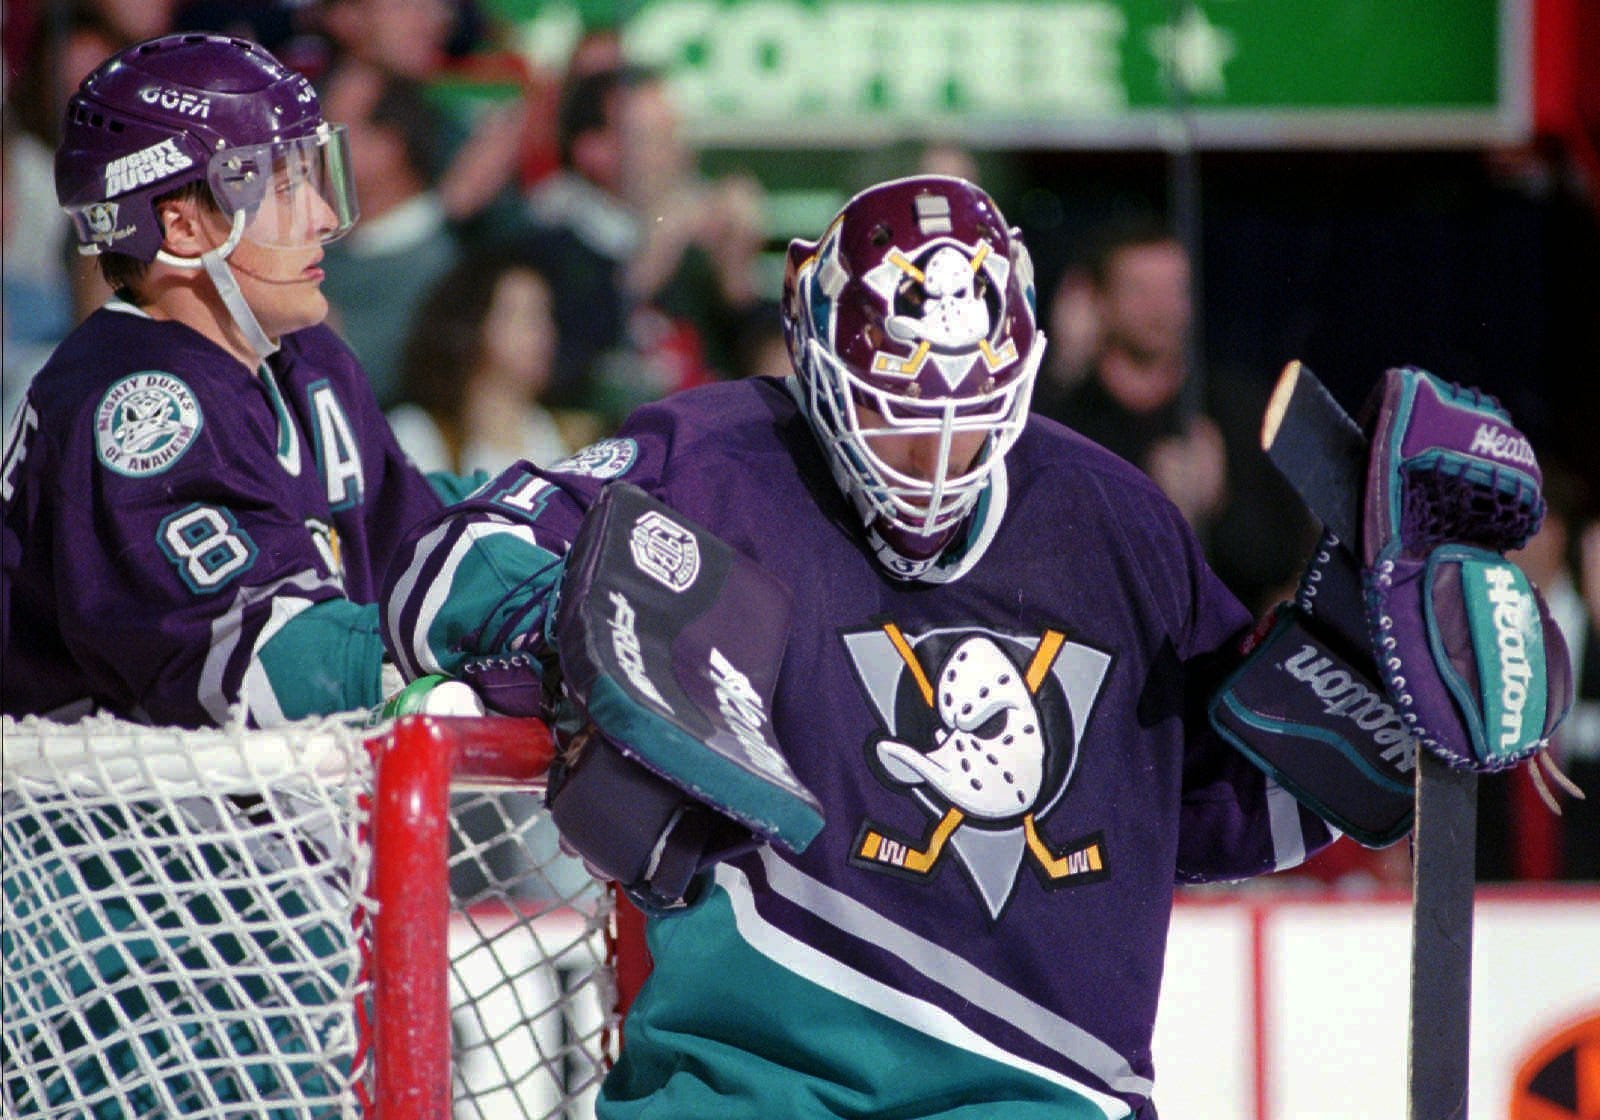 718369fc2 ... wholesale mighty ducks throwback jersey unveiled for anaheim ducks 25th  anniversary 6 months ago 27a17 b8994